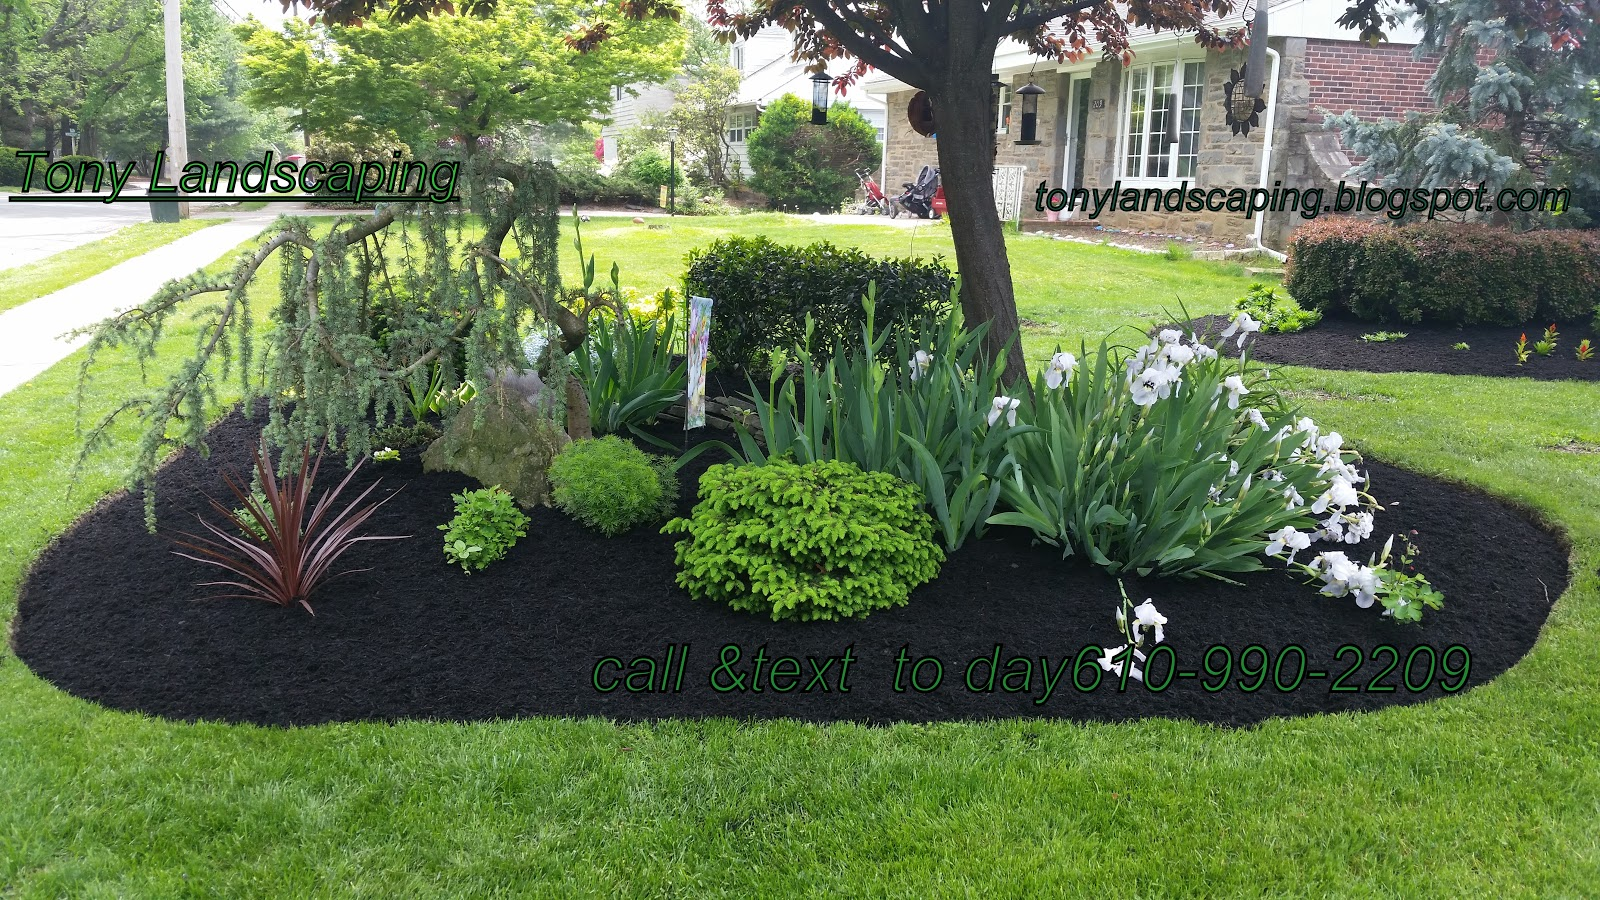 24 cozy landscaping company names images landscape ideas for Landscaping company names